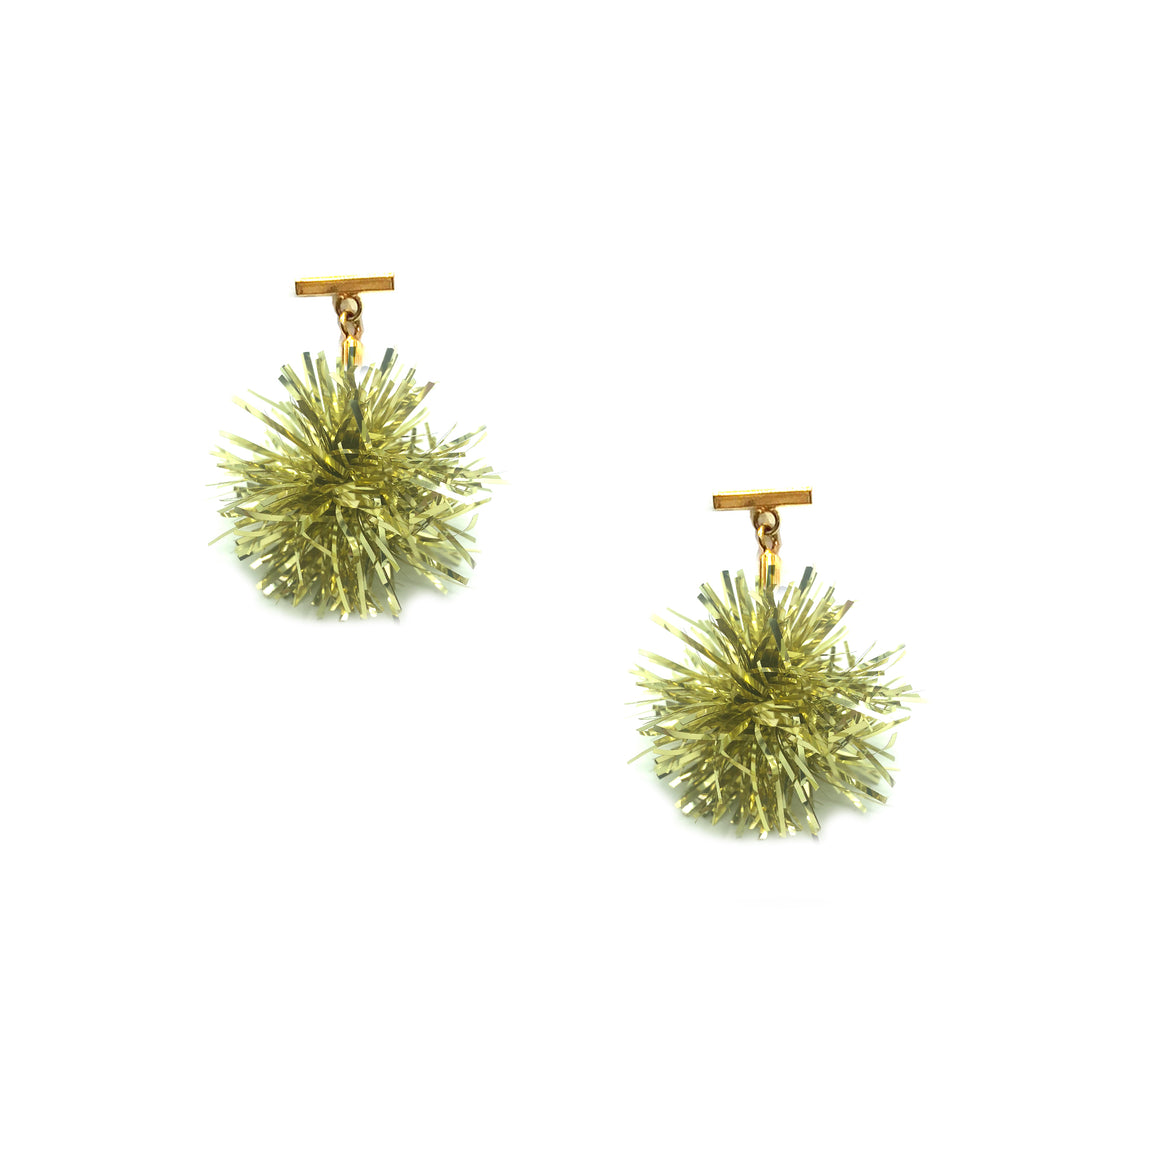 "1"" Gold Lurex Pom Pom T Stud Earrings, Earrings, Tuleste, Tuleste"